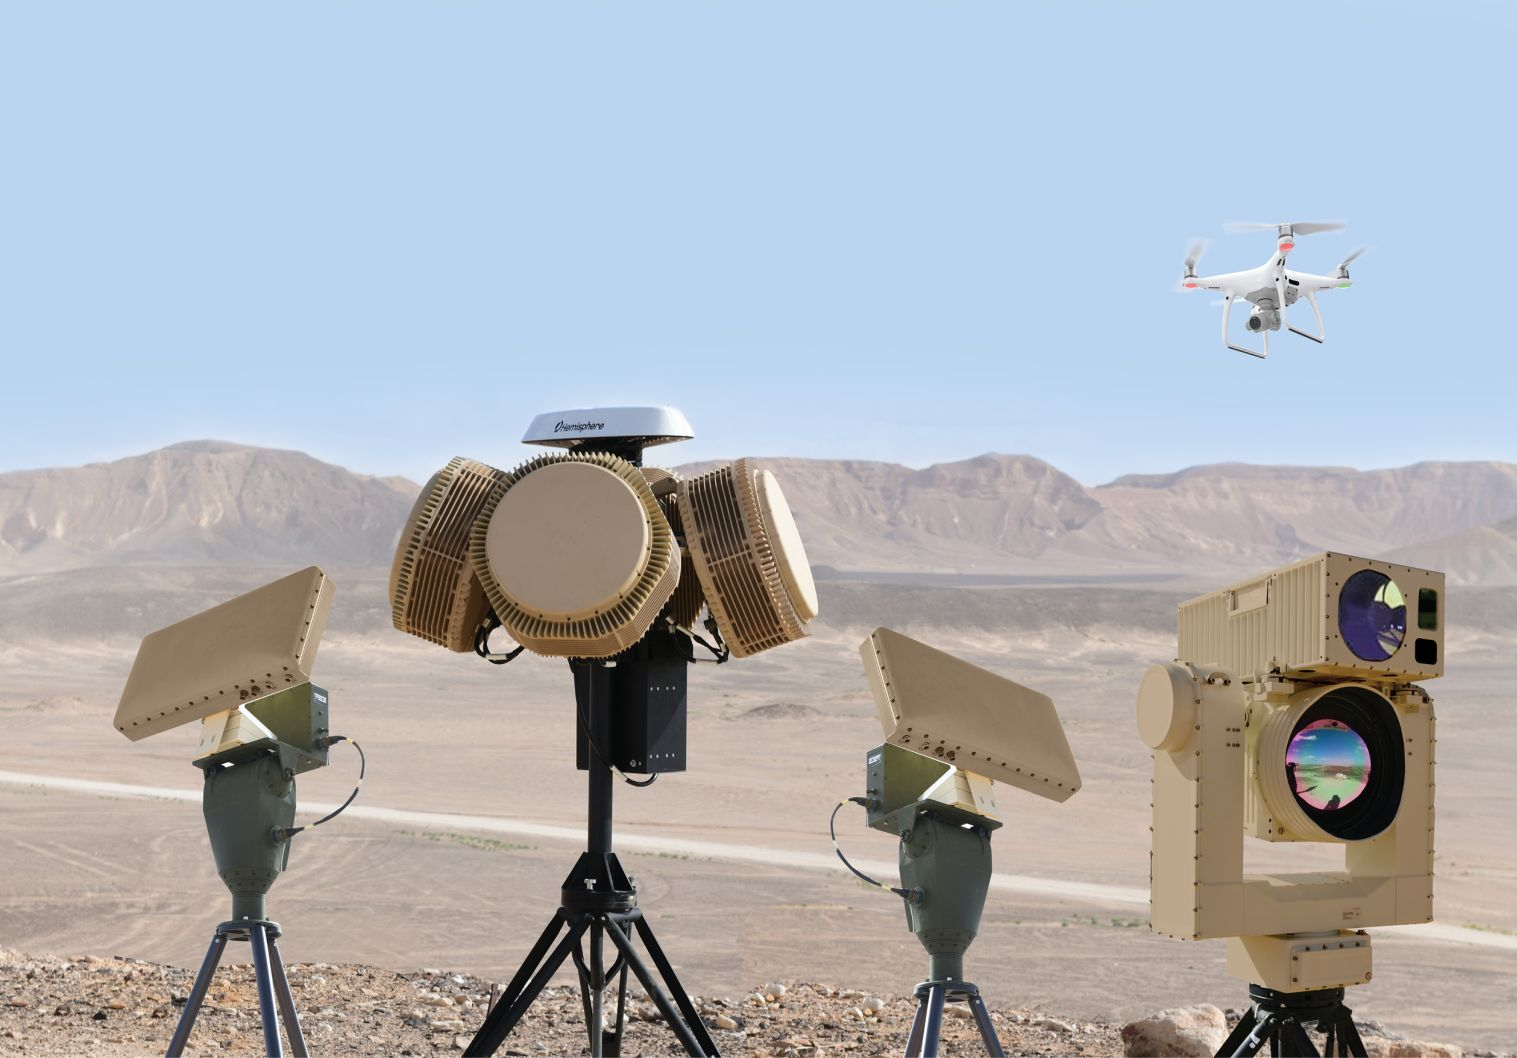 A new anti-drone system shows promising results - Asia Times